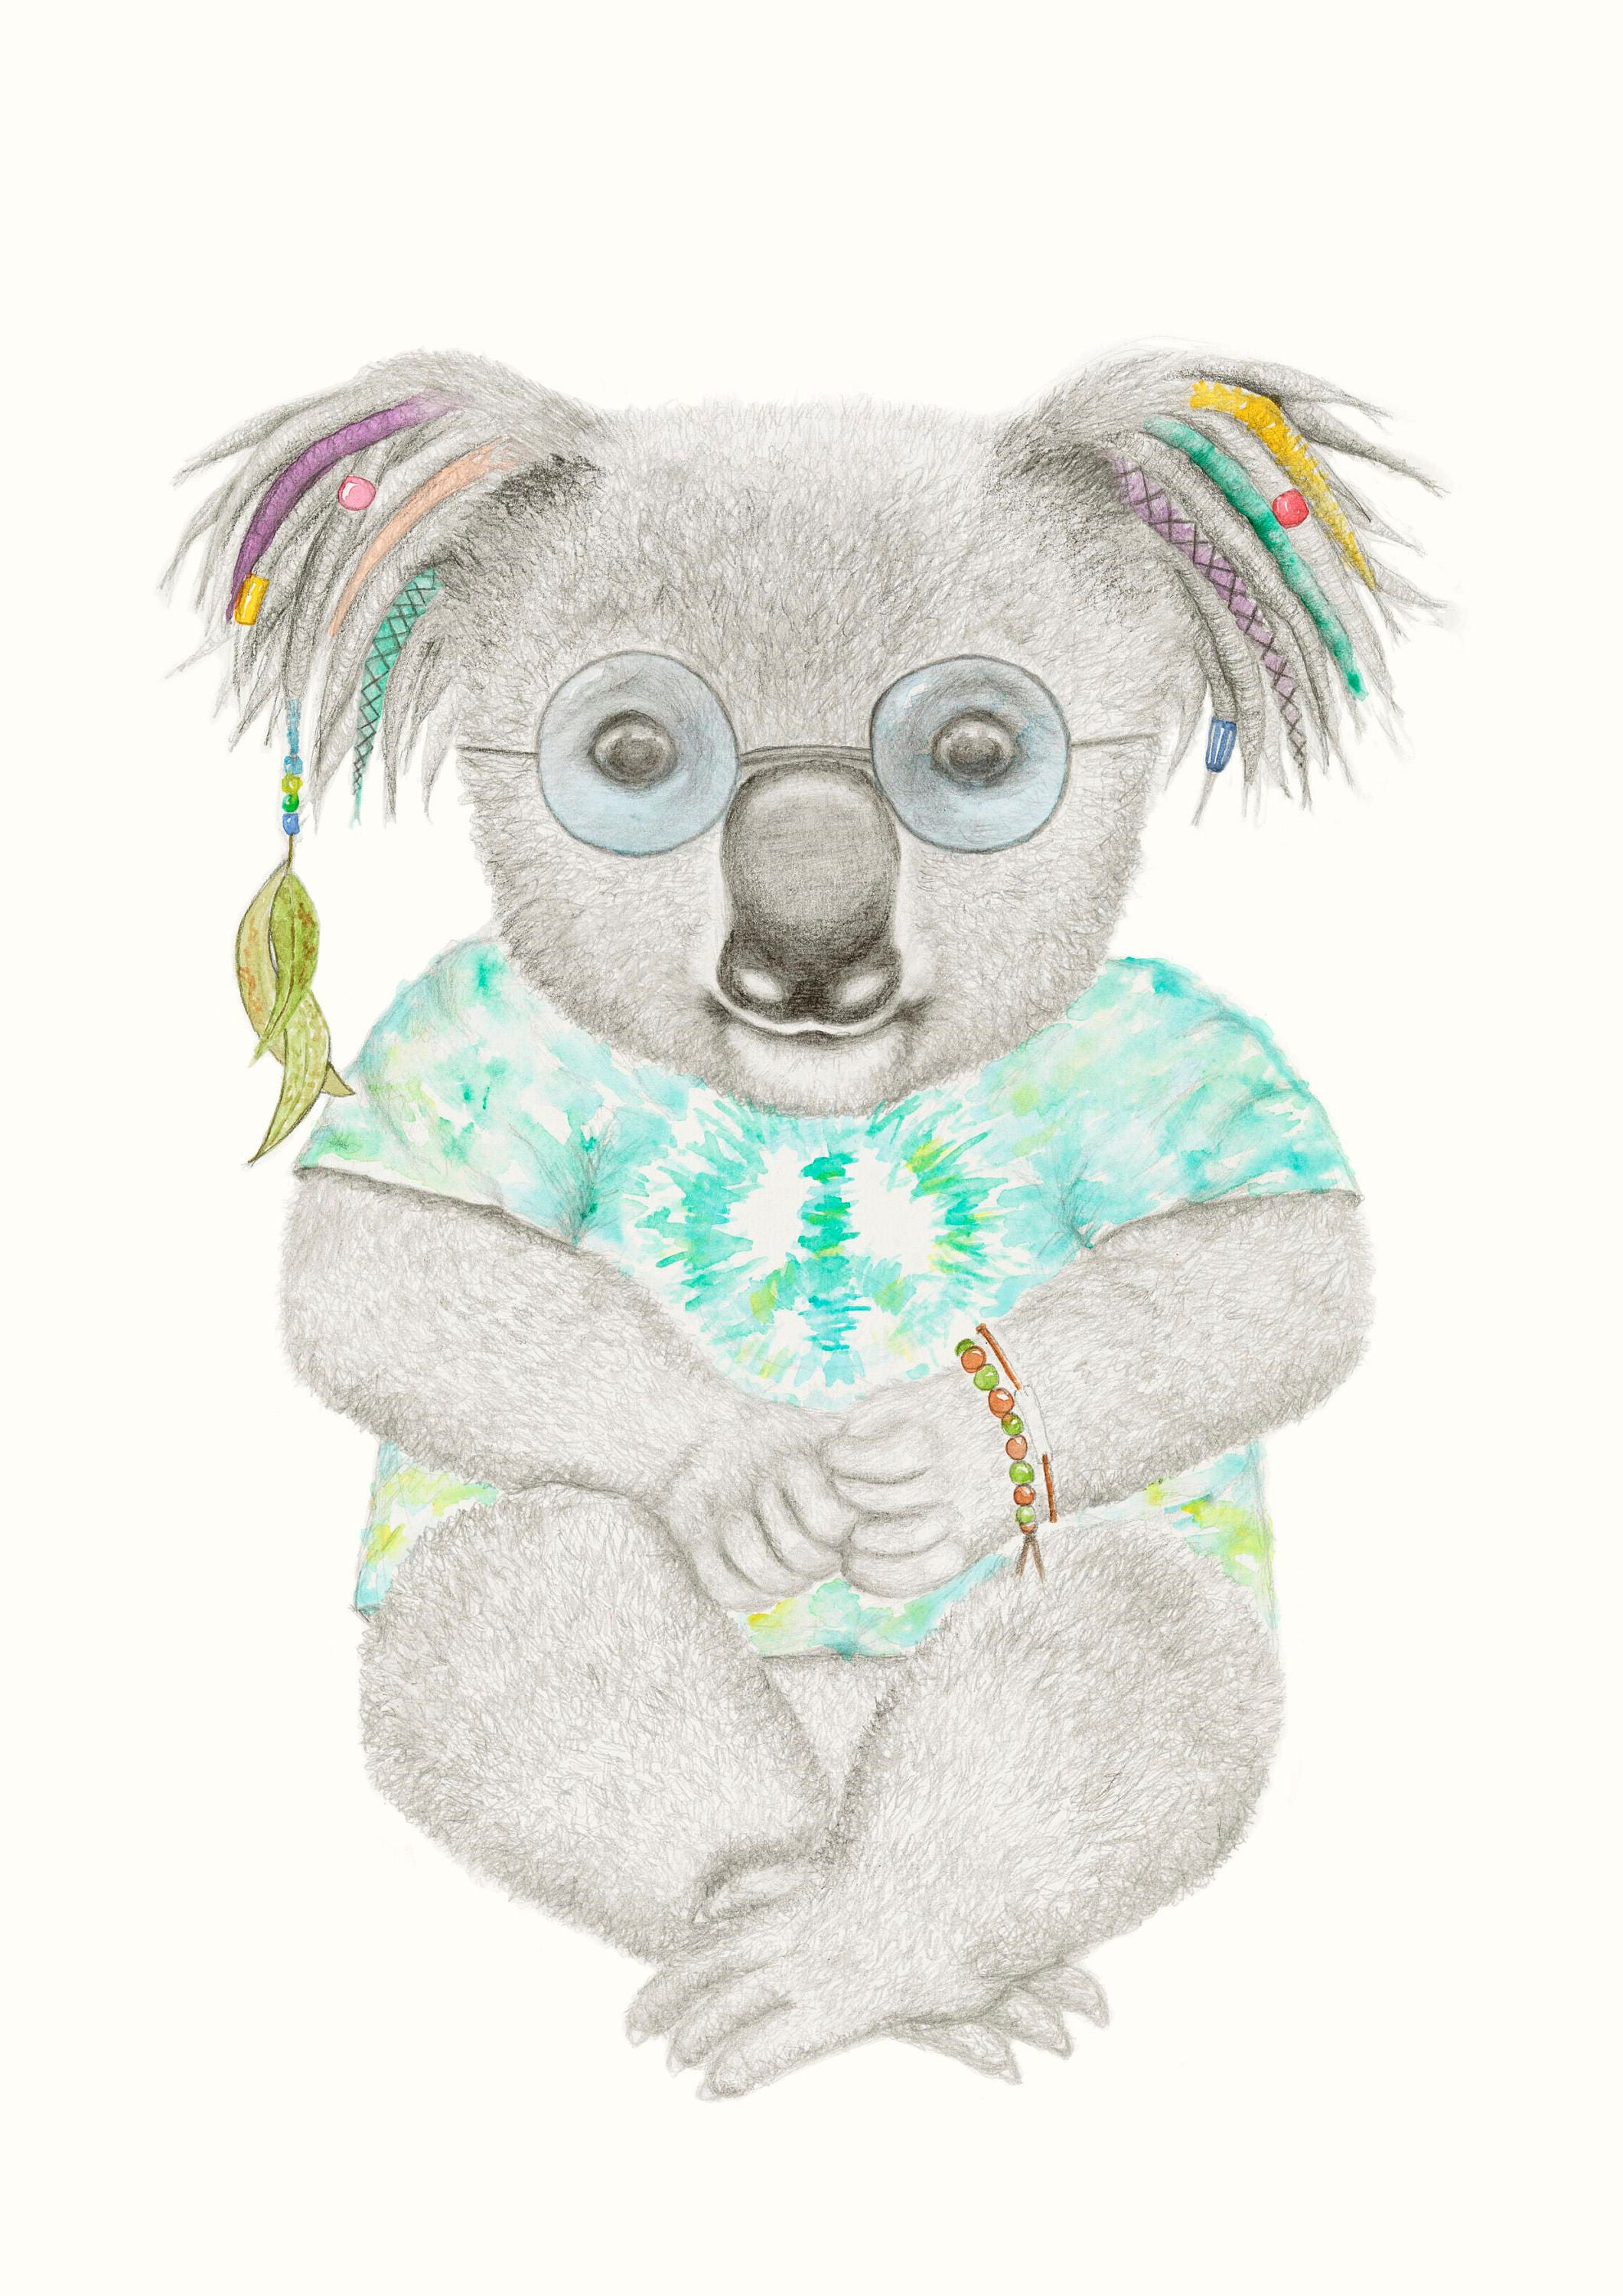 Koala Print Koala Art Quirky Art Cute Nursery Art Koala Nursery